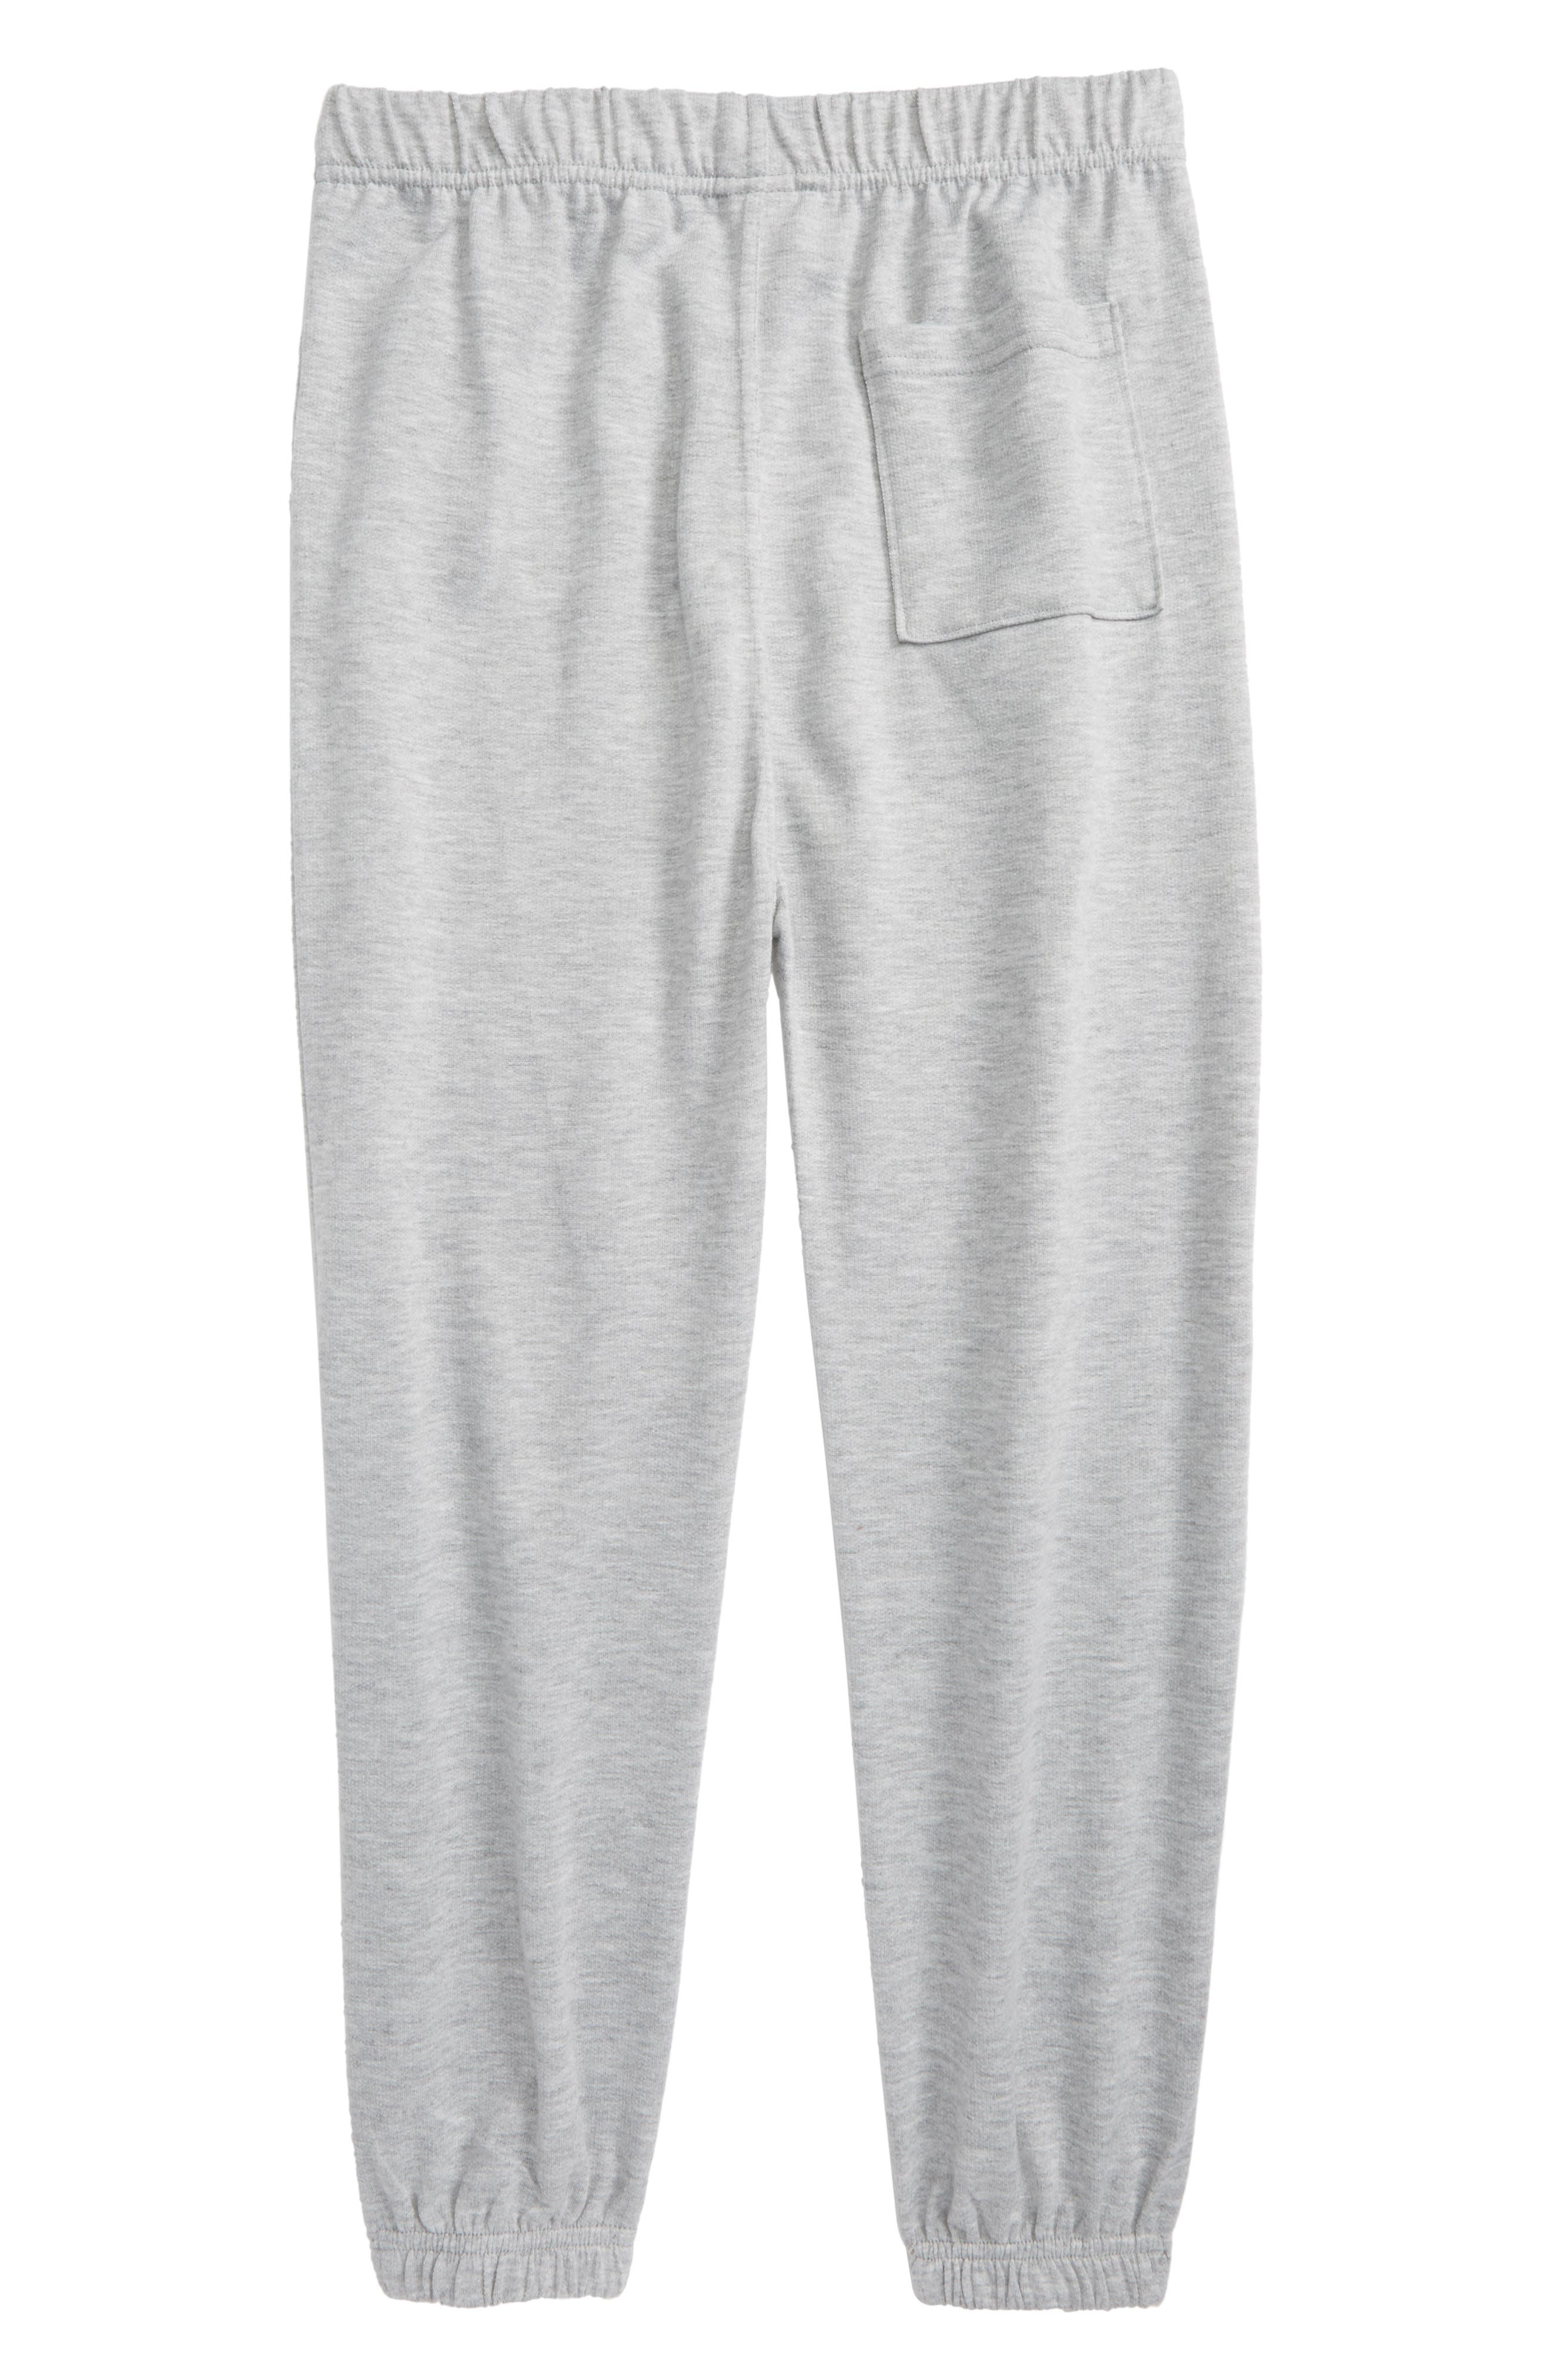 Jogger Pants,                             Alternate thumbnail 2, color,                             Grey Medium Heather